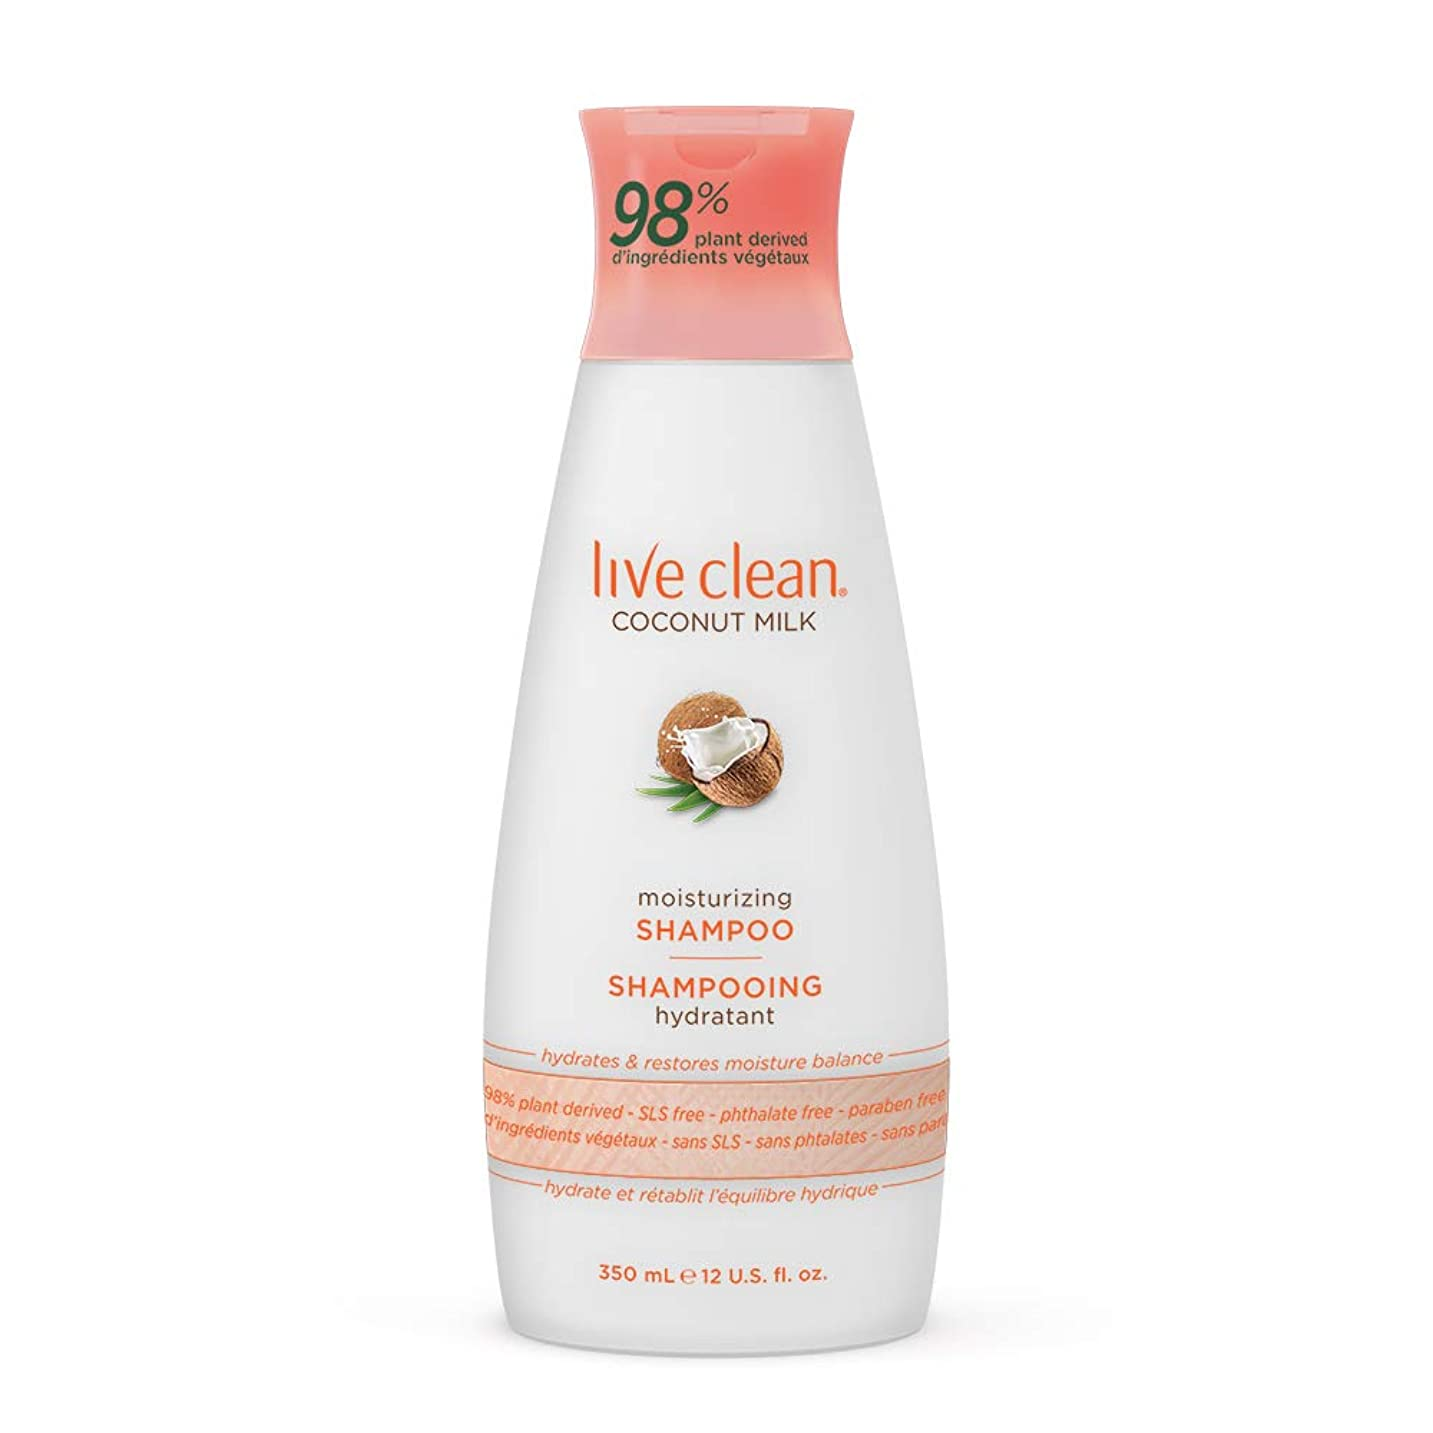 砂利コンテンツ確立Live Clean Coconut Milk Moisturizing Shampoo, 12 oz.